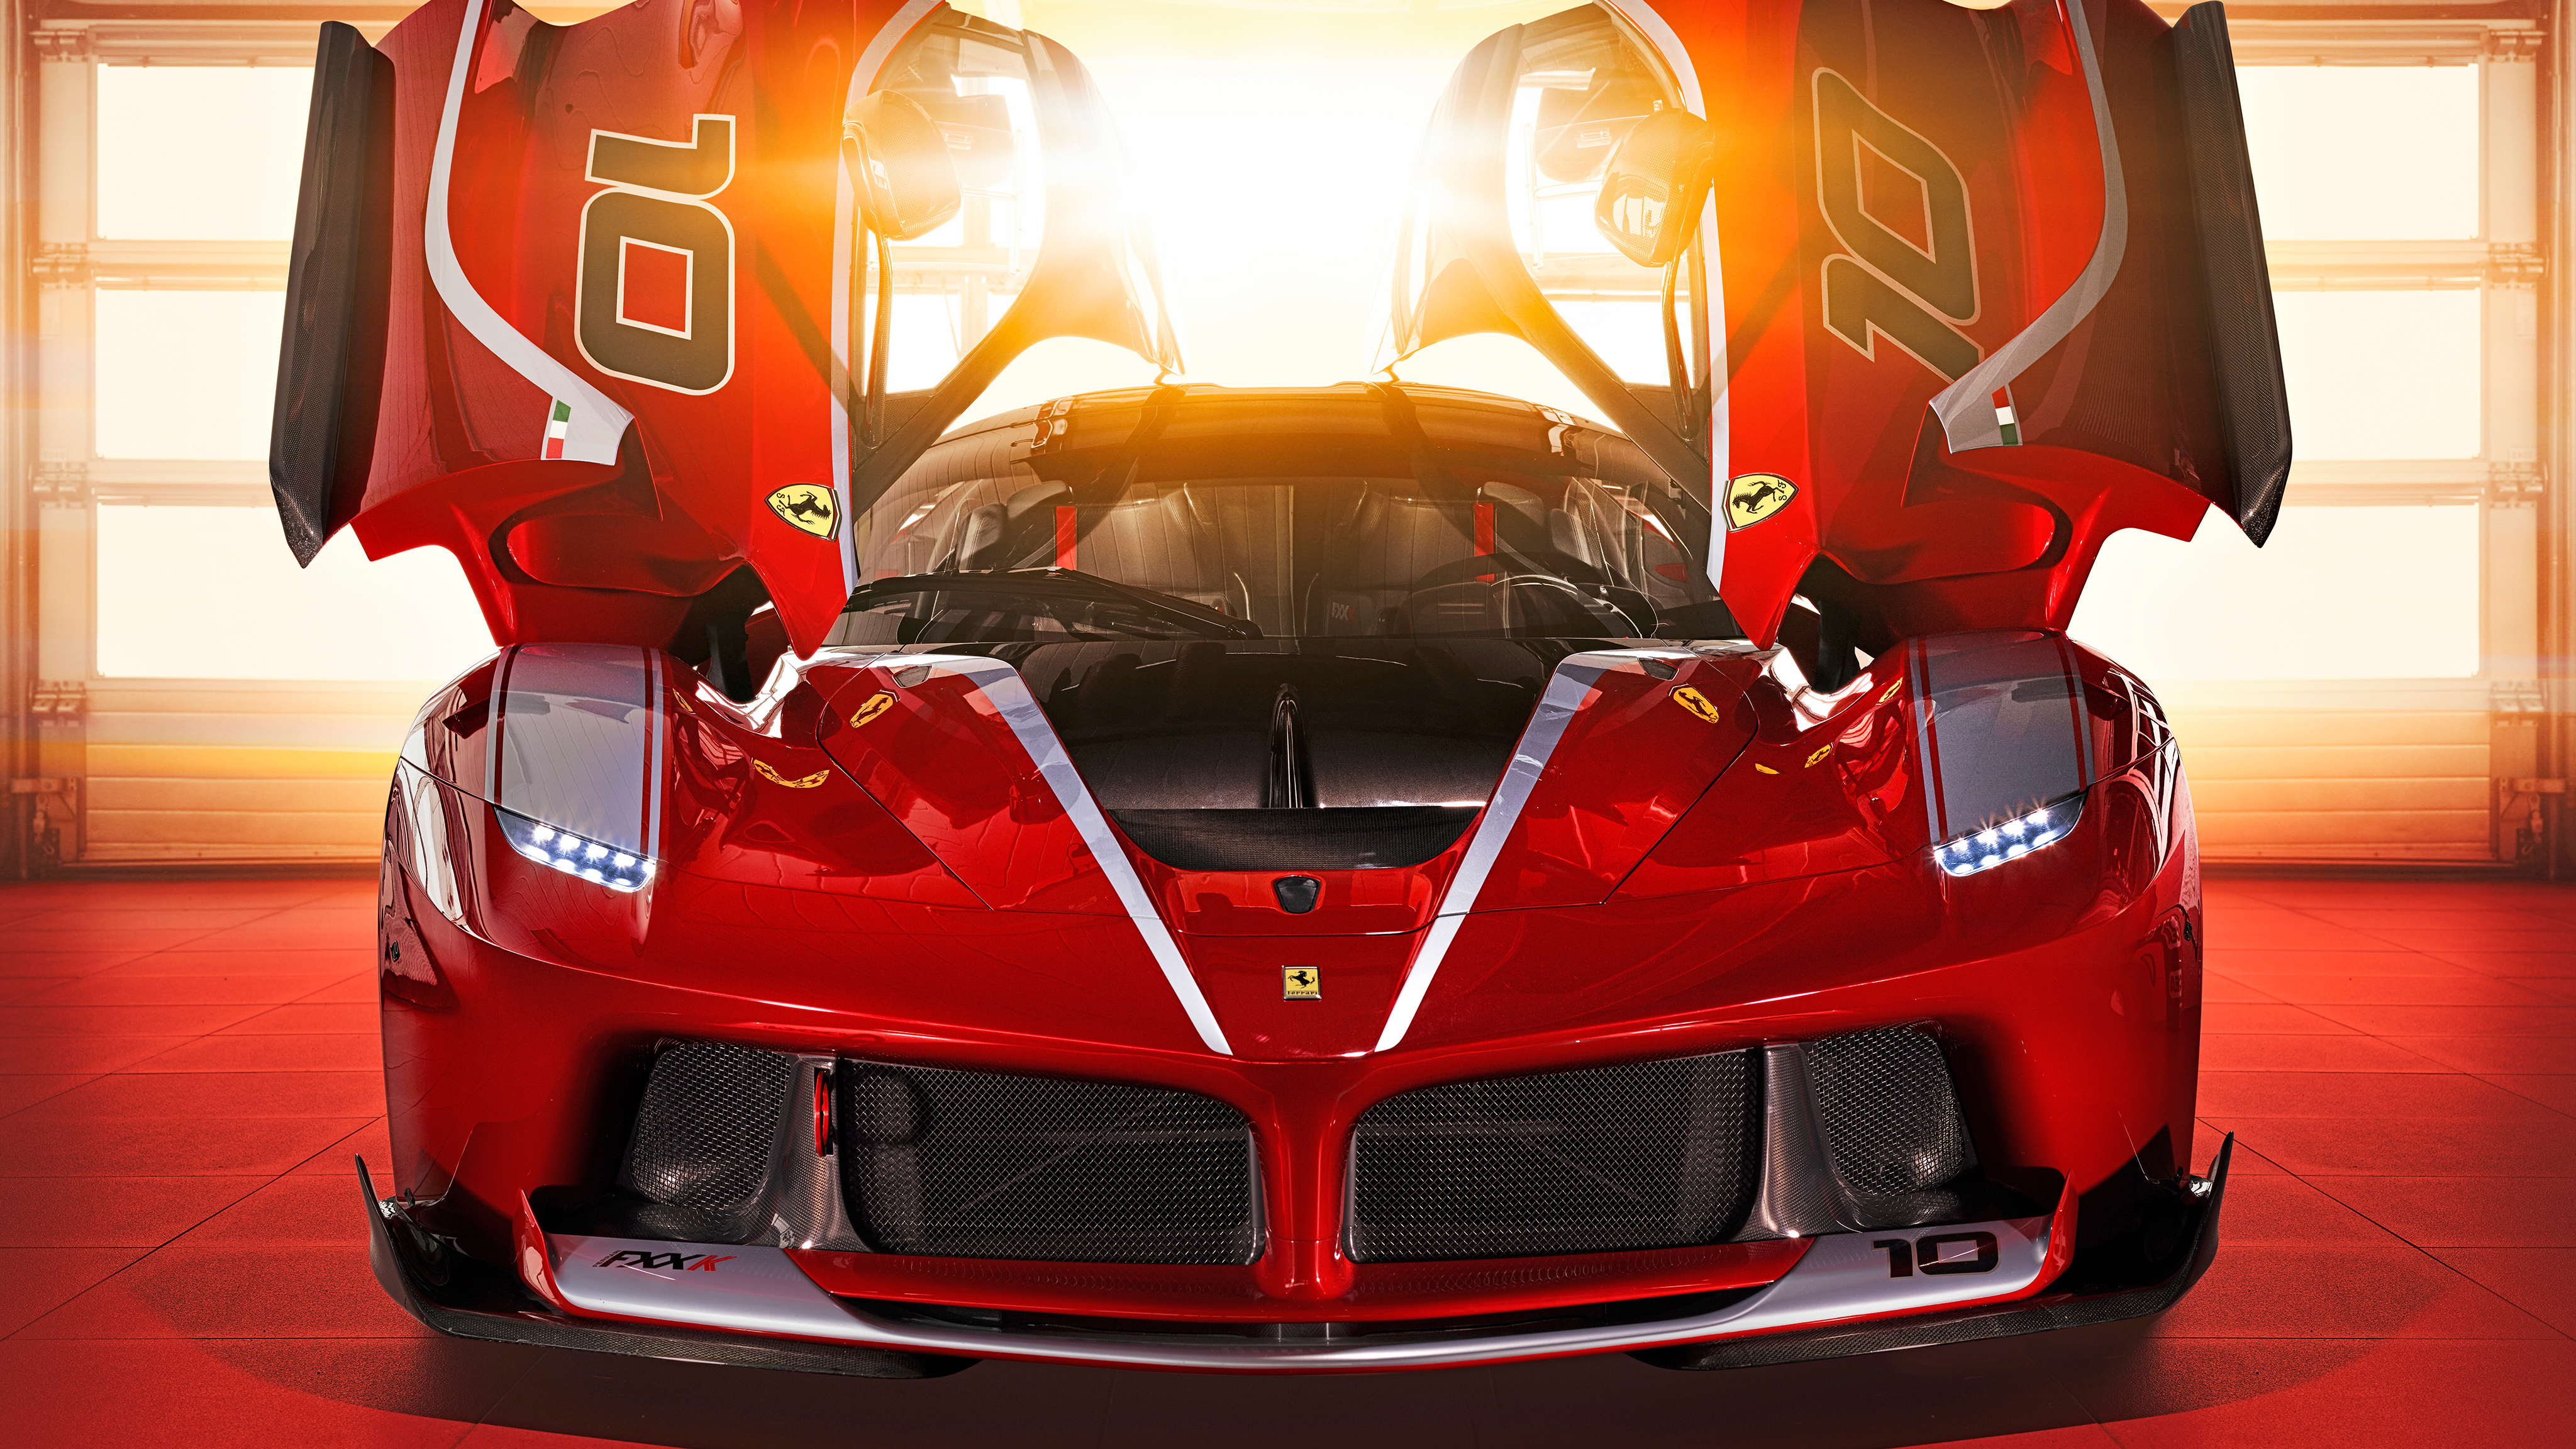 Ferrari Fxx K 4k Wallpaper Hd Car Wallpapers Id 9986